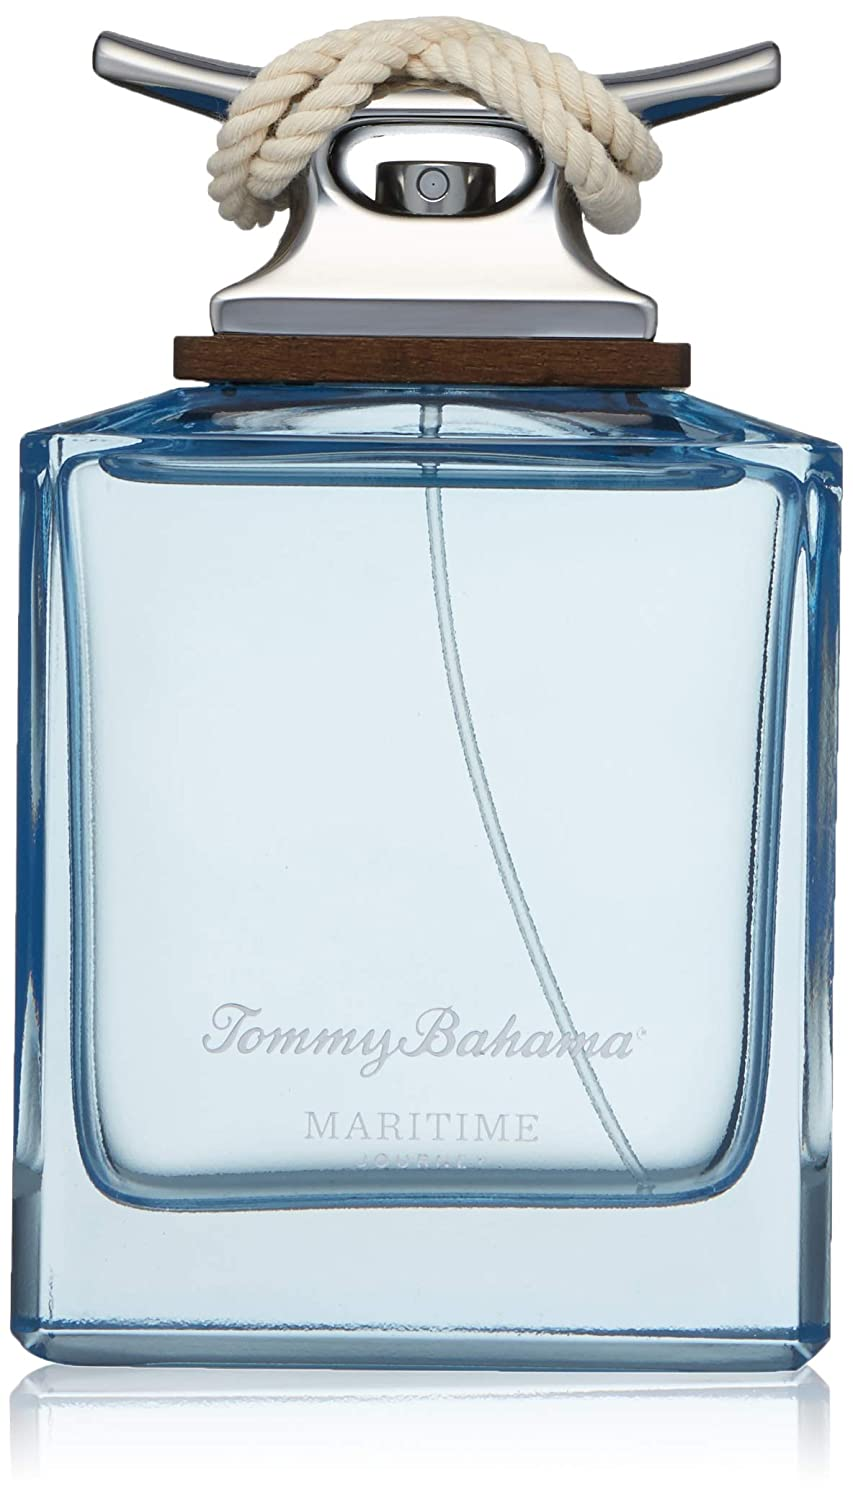 Tommy Bahama Maritime Journey Cologne Jumbo 6.7 Fl OFFicial site Him for Oz El Paso Mall